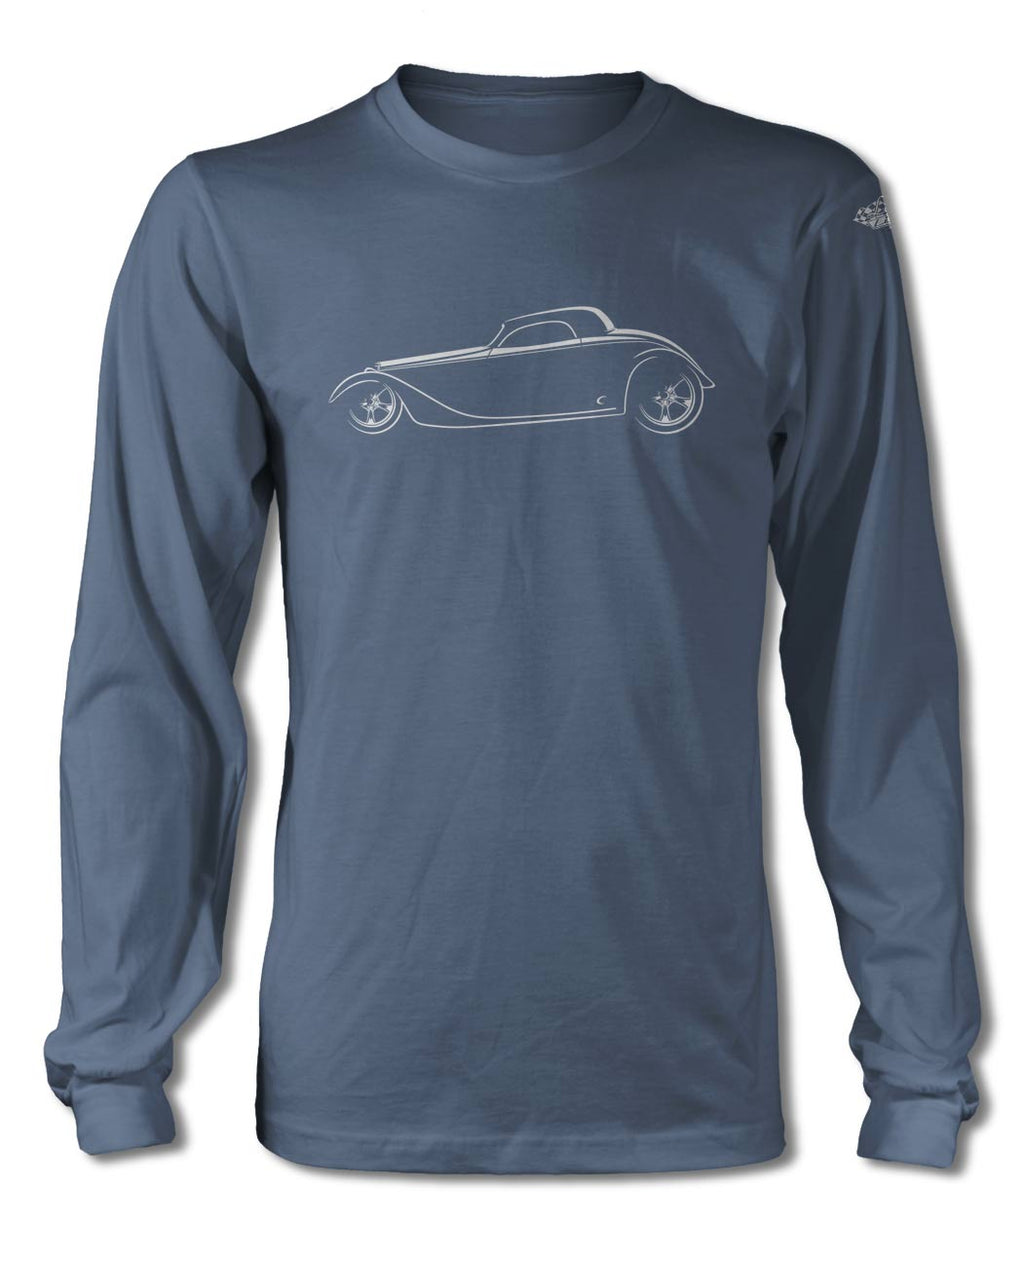 1934 Ford Coupe Hot Rod T-Shirt - Long Sleeves - Side View